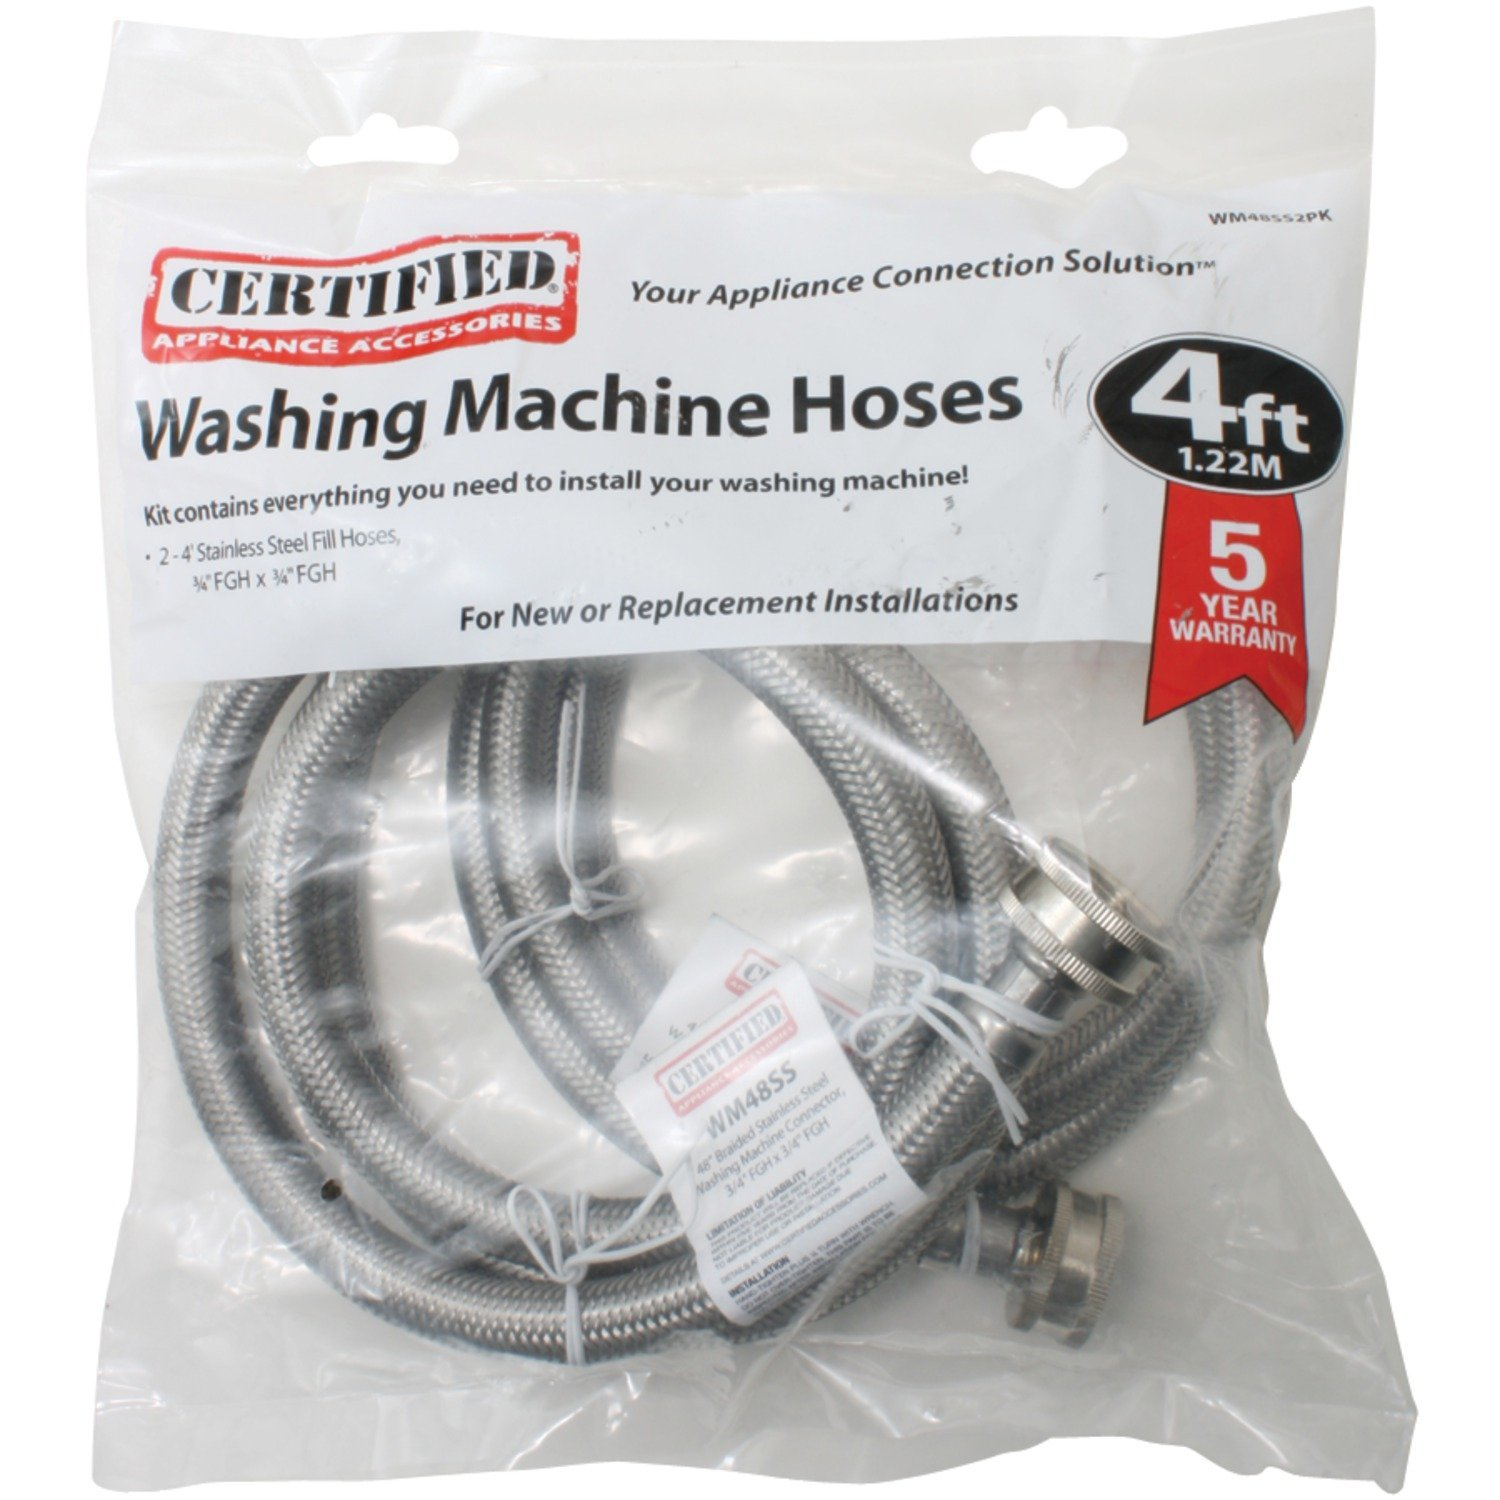 Certified Appliance Accessories 2 pk Braided Stainless Steel Washing Machine Hoses, 4ft